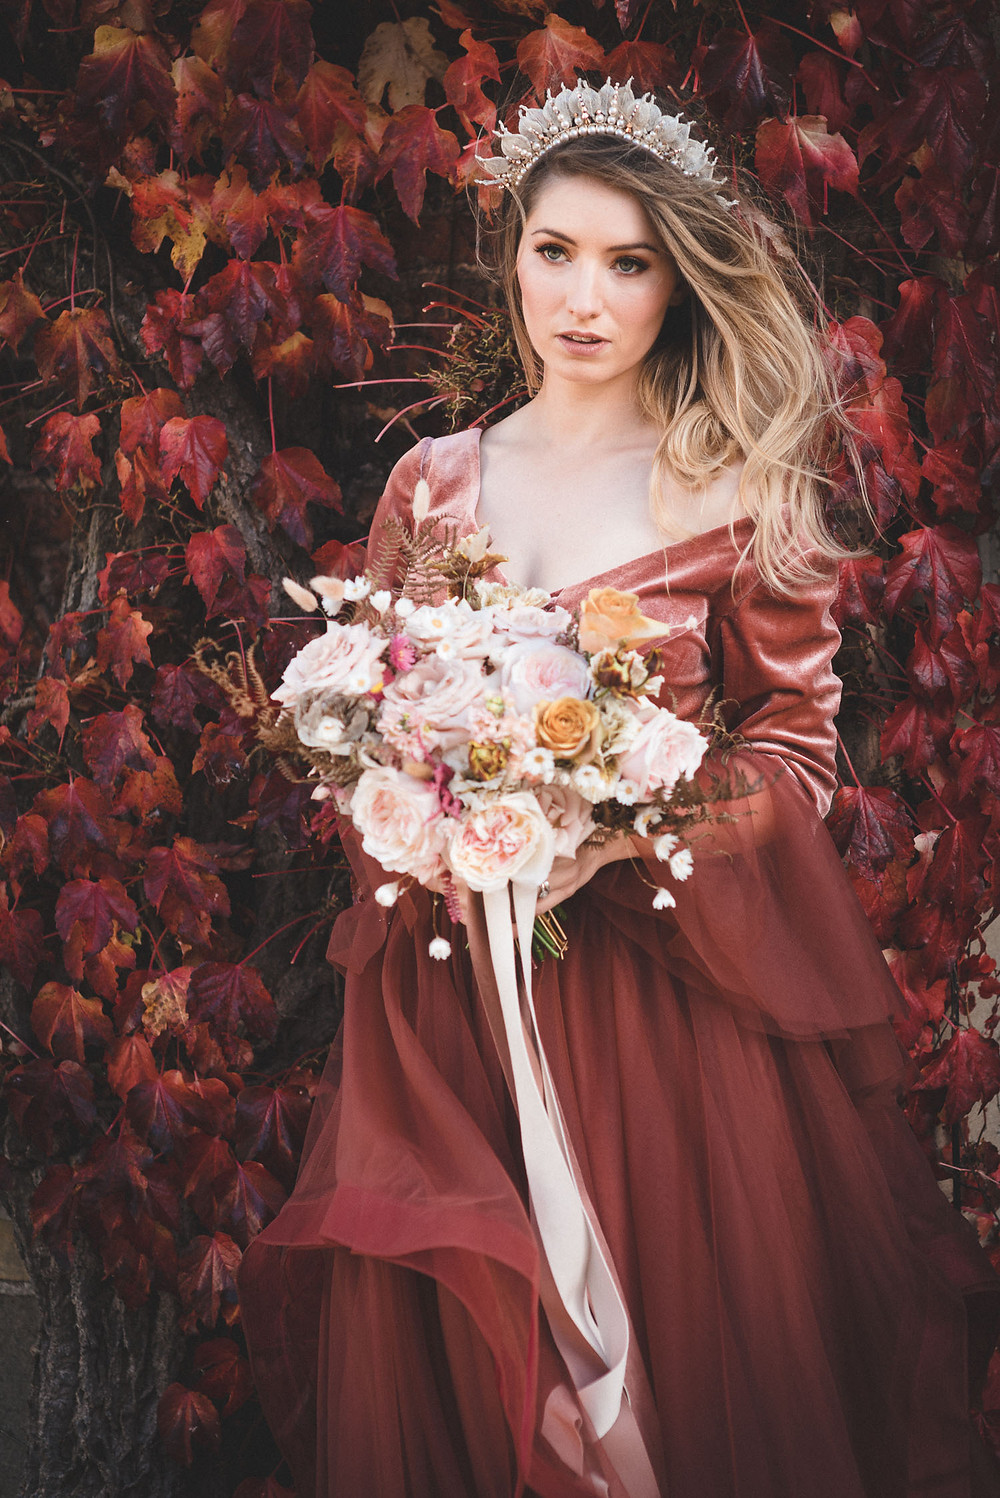 Bride wearing a modern crown stands in front of a red Virginia Creeper holding a bouquet of David Austin roses